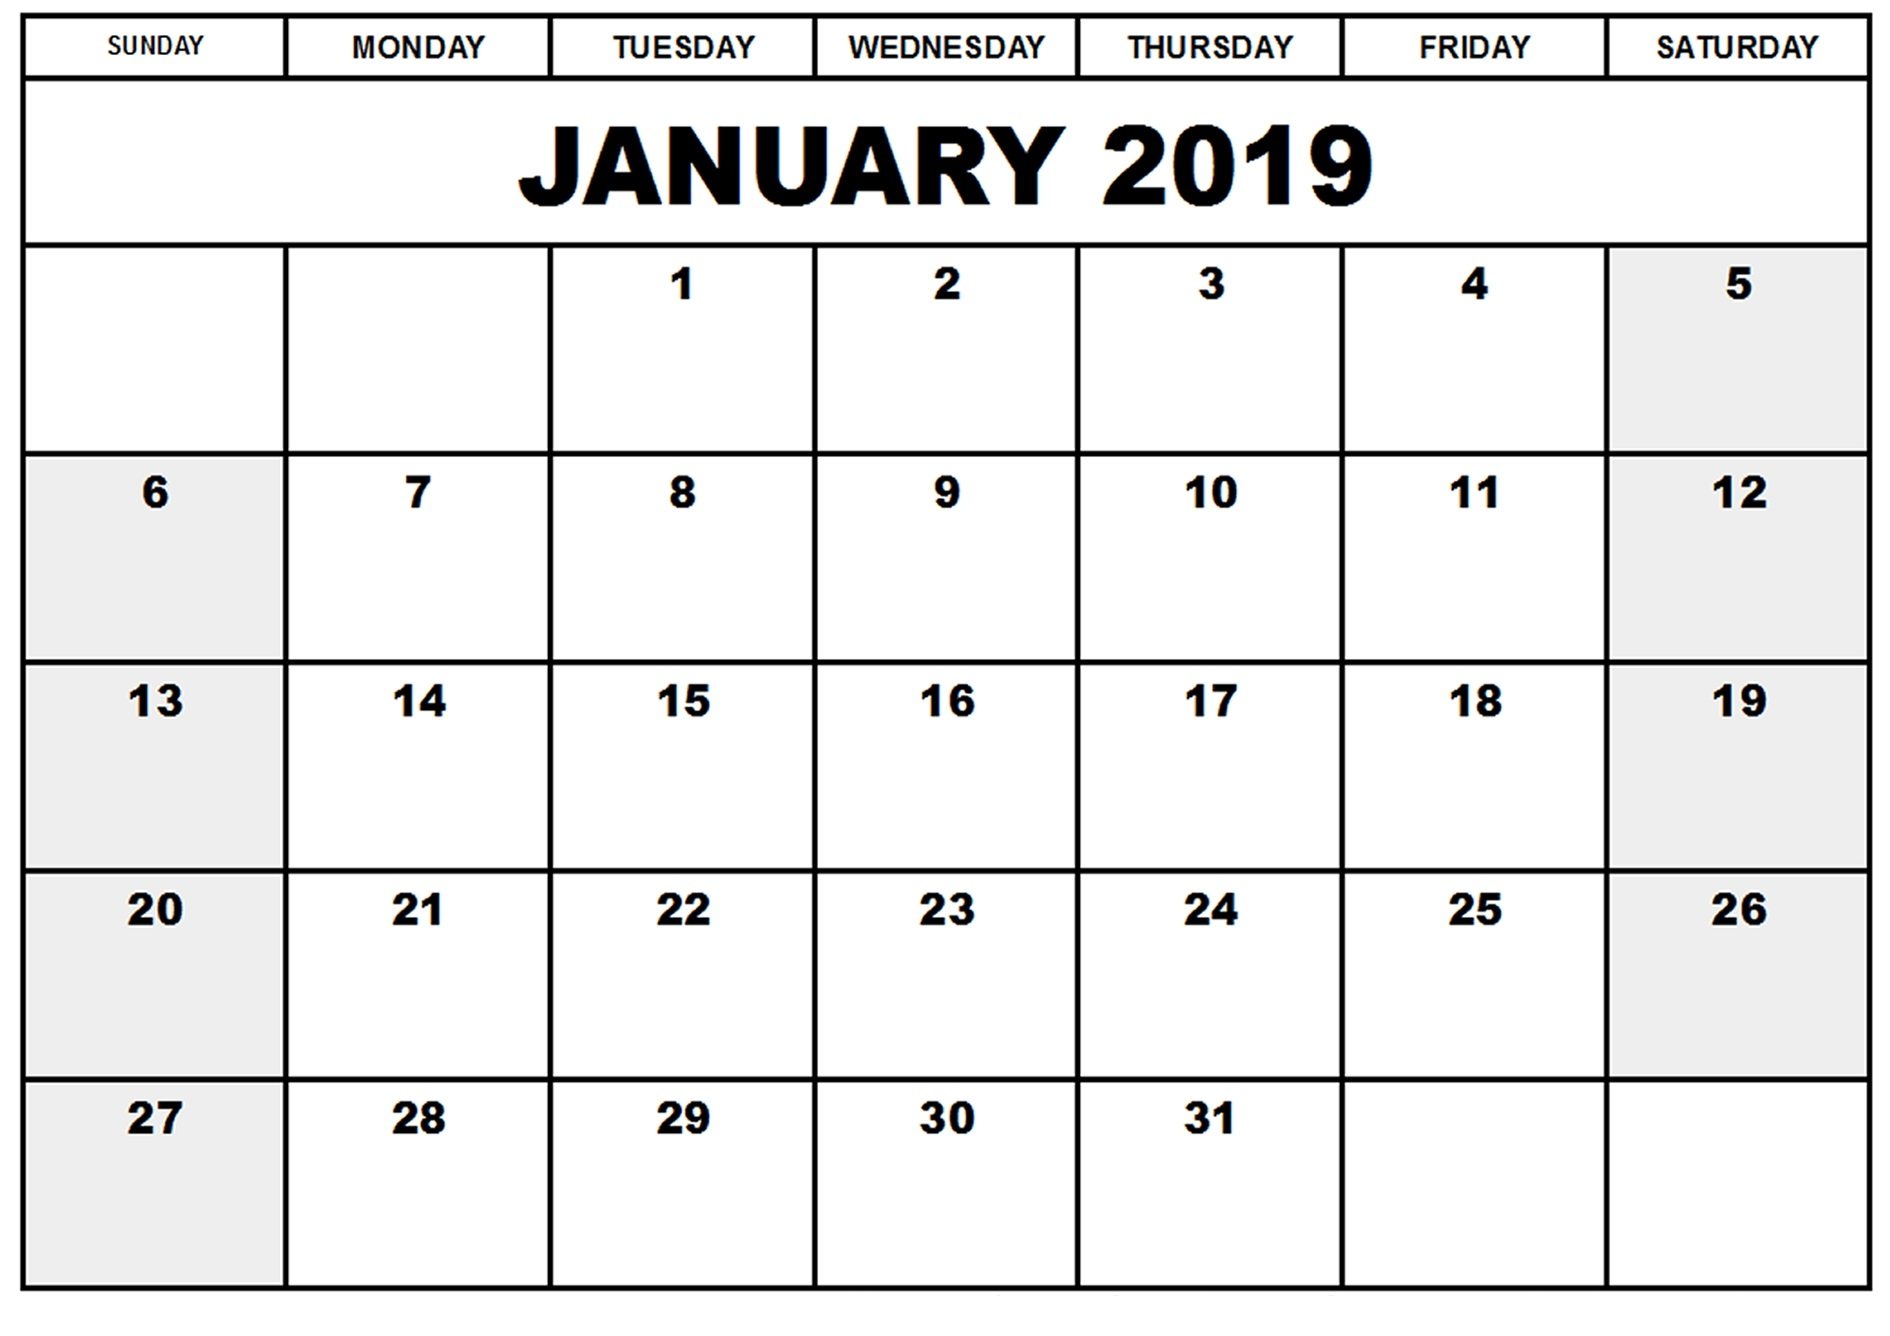 January 2019 Calendar With Holidays Large Images